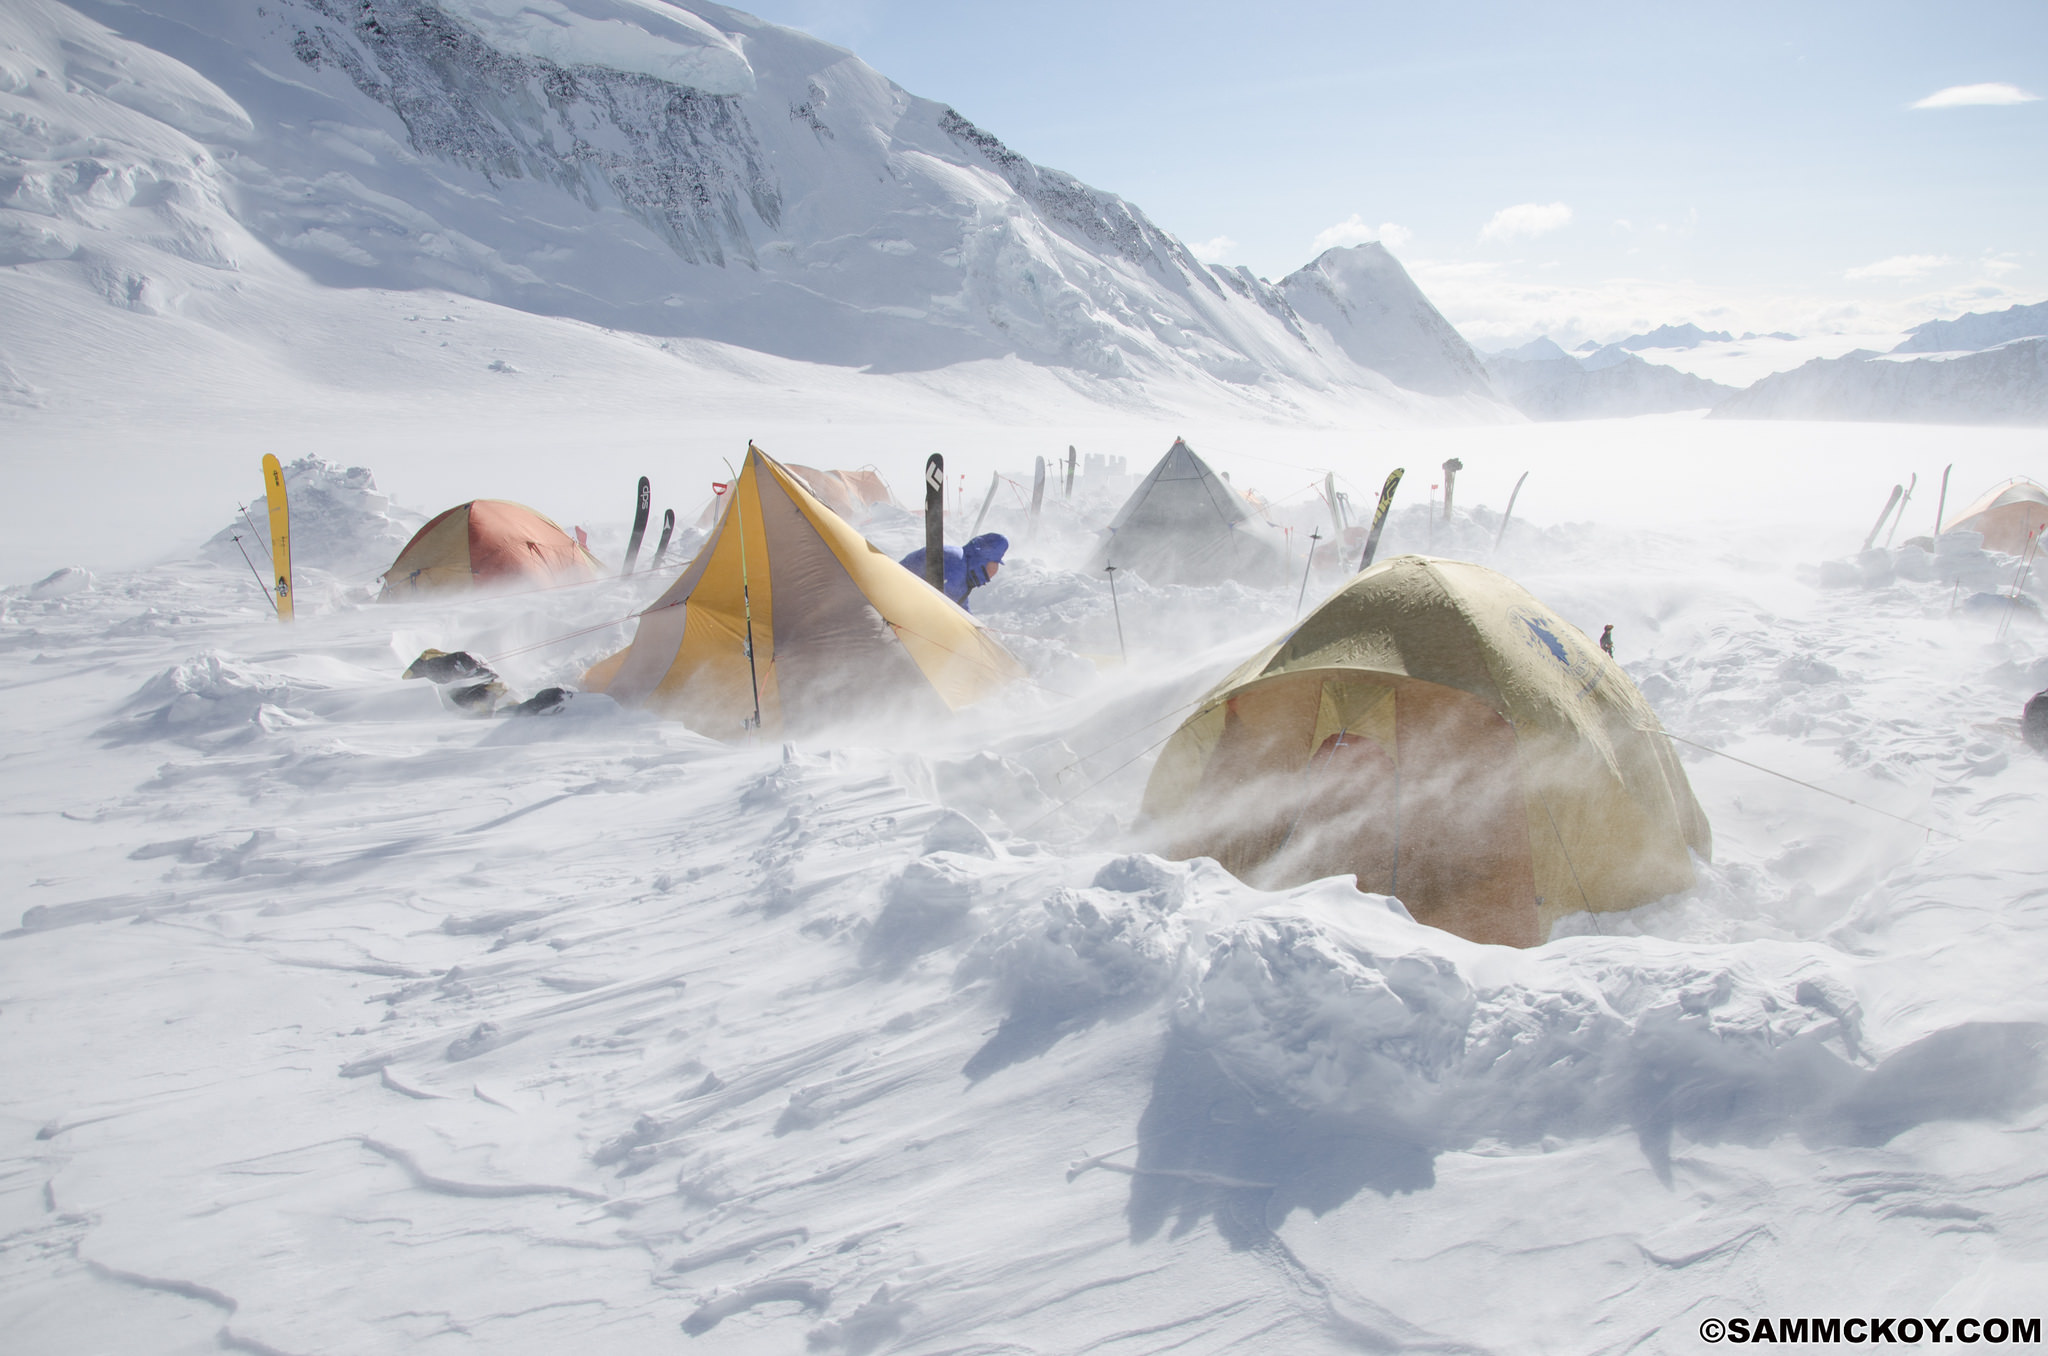 A windstorm at camp 1. The tents took the gale force winds well but anything downwind would fill in with snow. Snow-walls only proved annoying as they would cause snowdrift to settle behind and bury the tents.